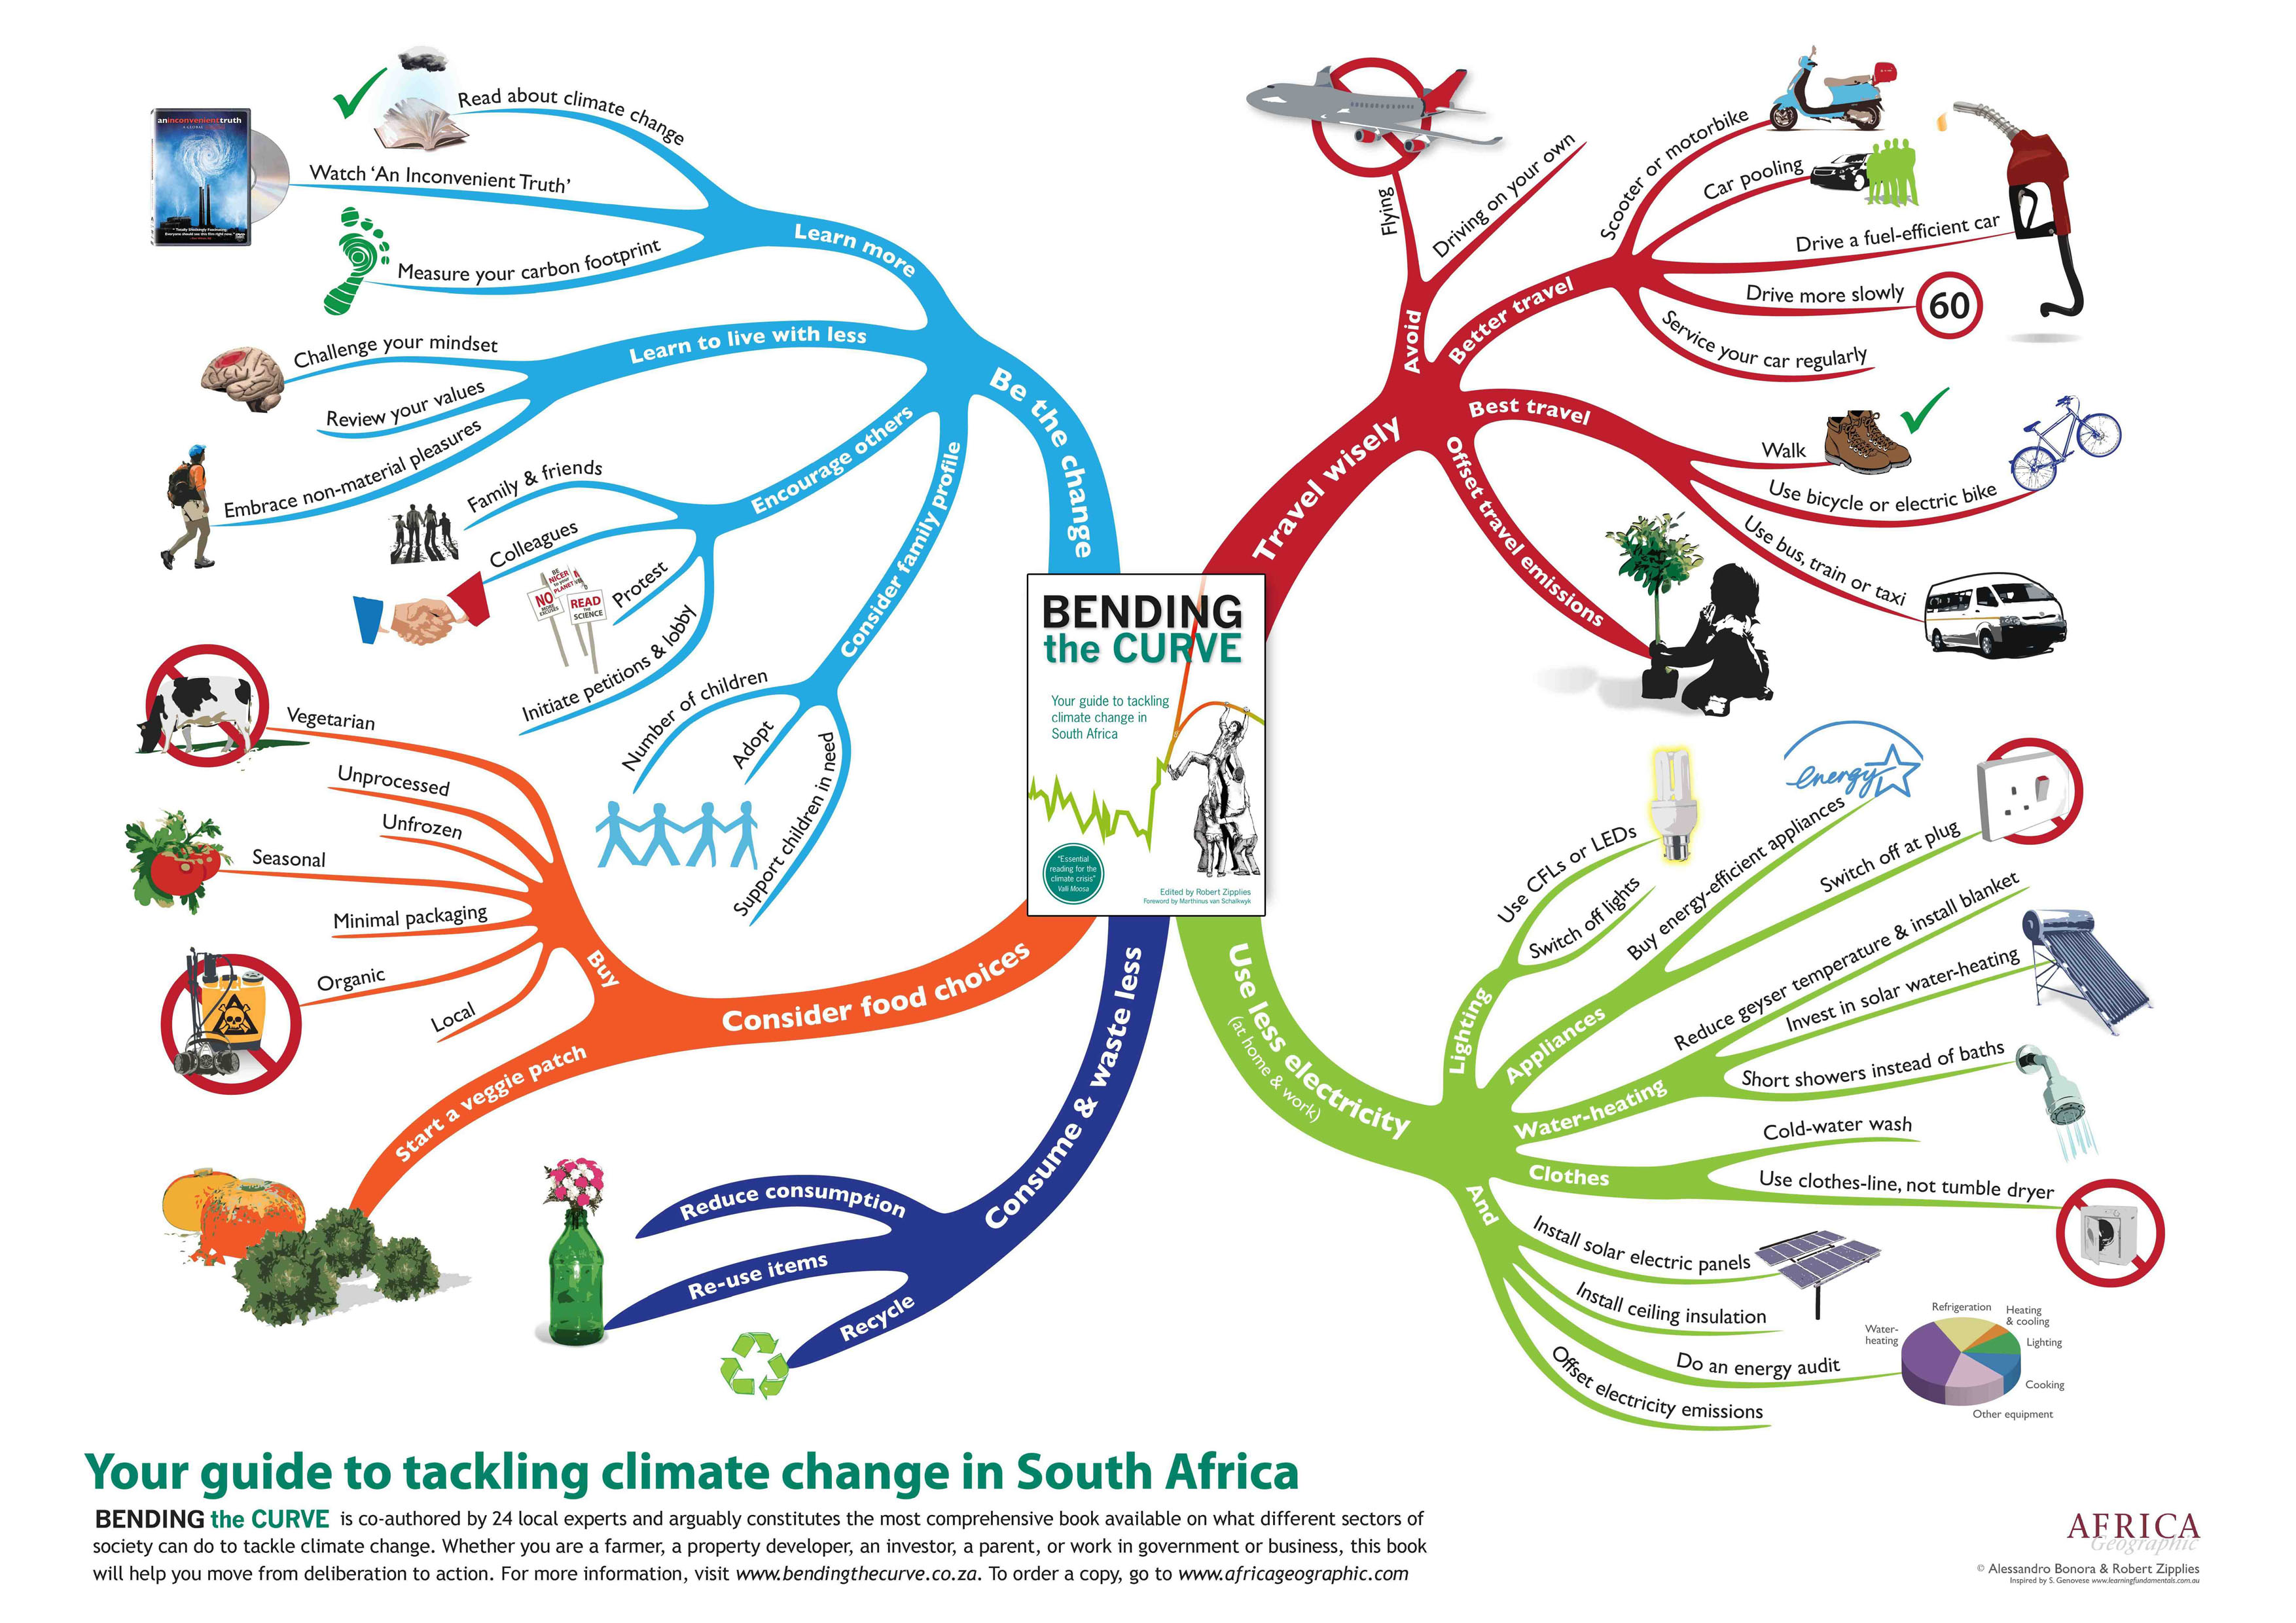 knowledge management case studies in south africa United nations local case studies from africa sdf there is always something new out of africa bushbuck ridge project, south africa: working for wetlands cows to kilowatts, nigeria: turning waste into energy and fertiliser.